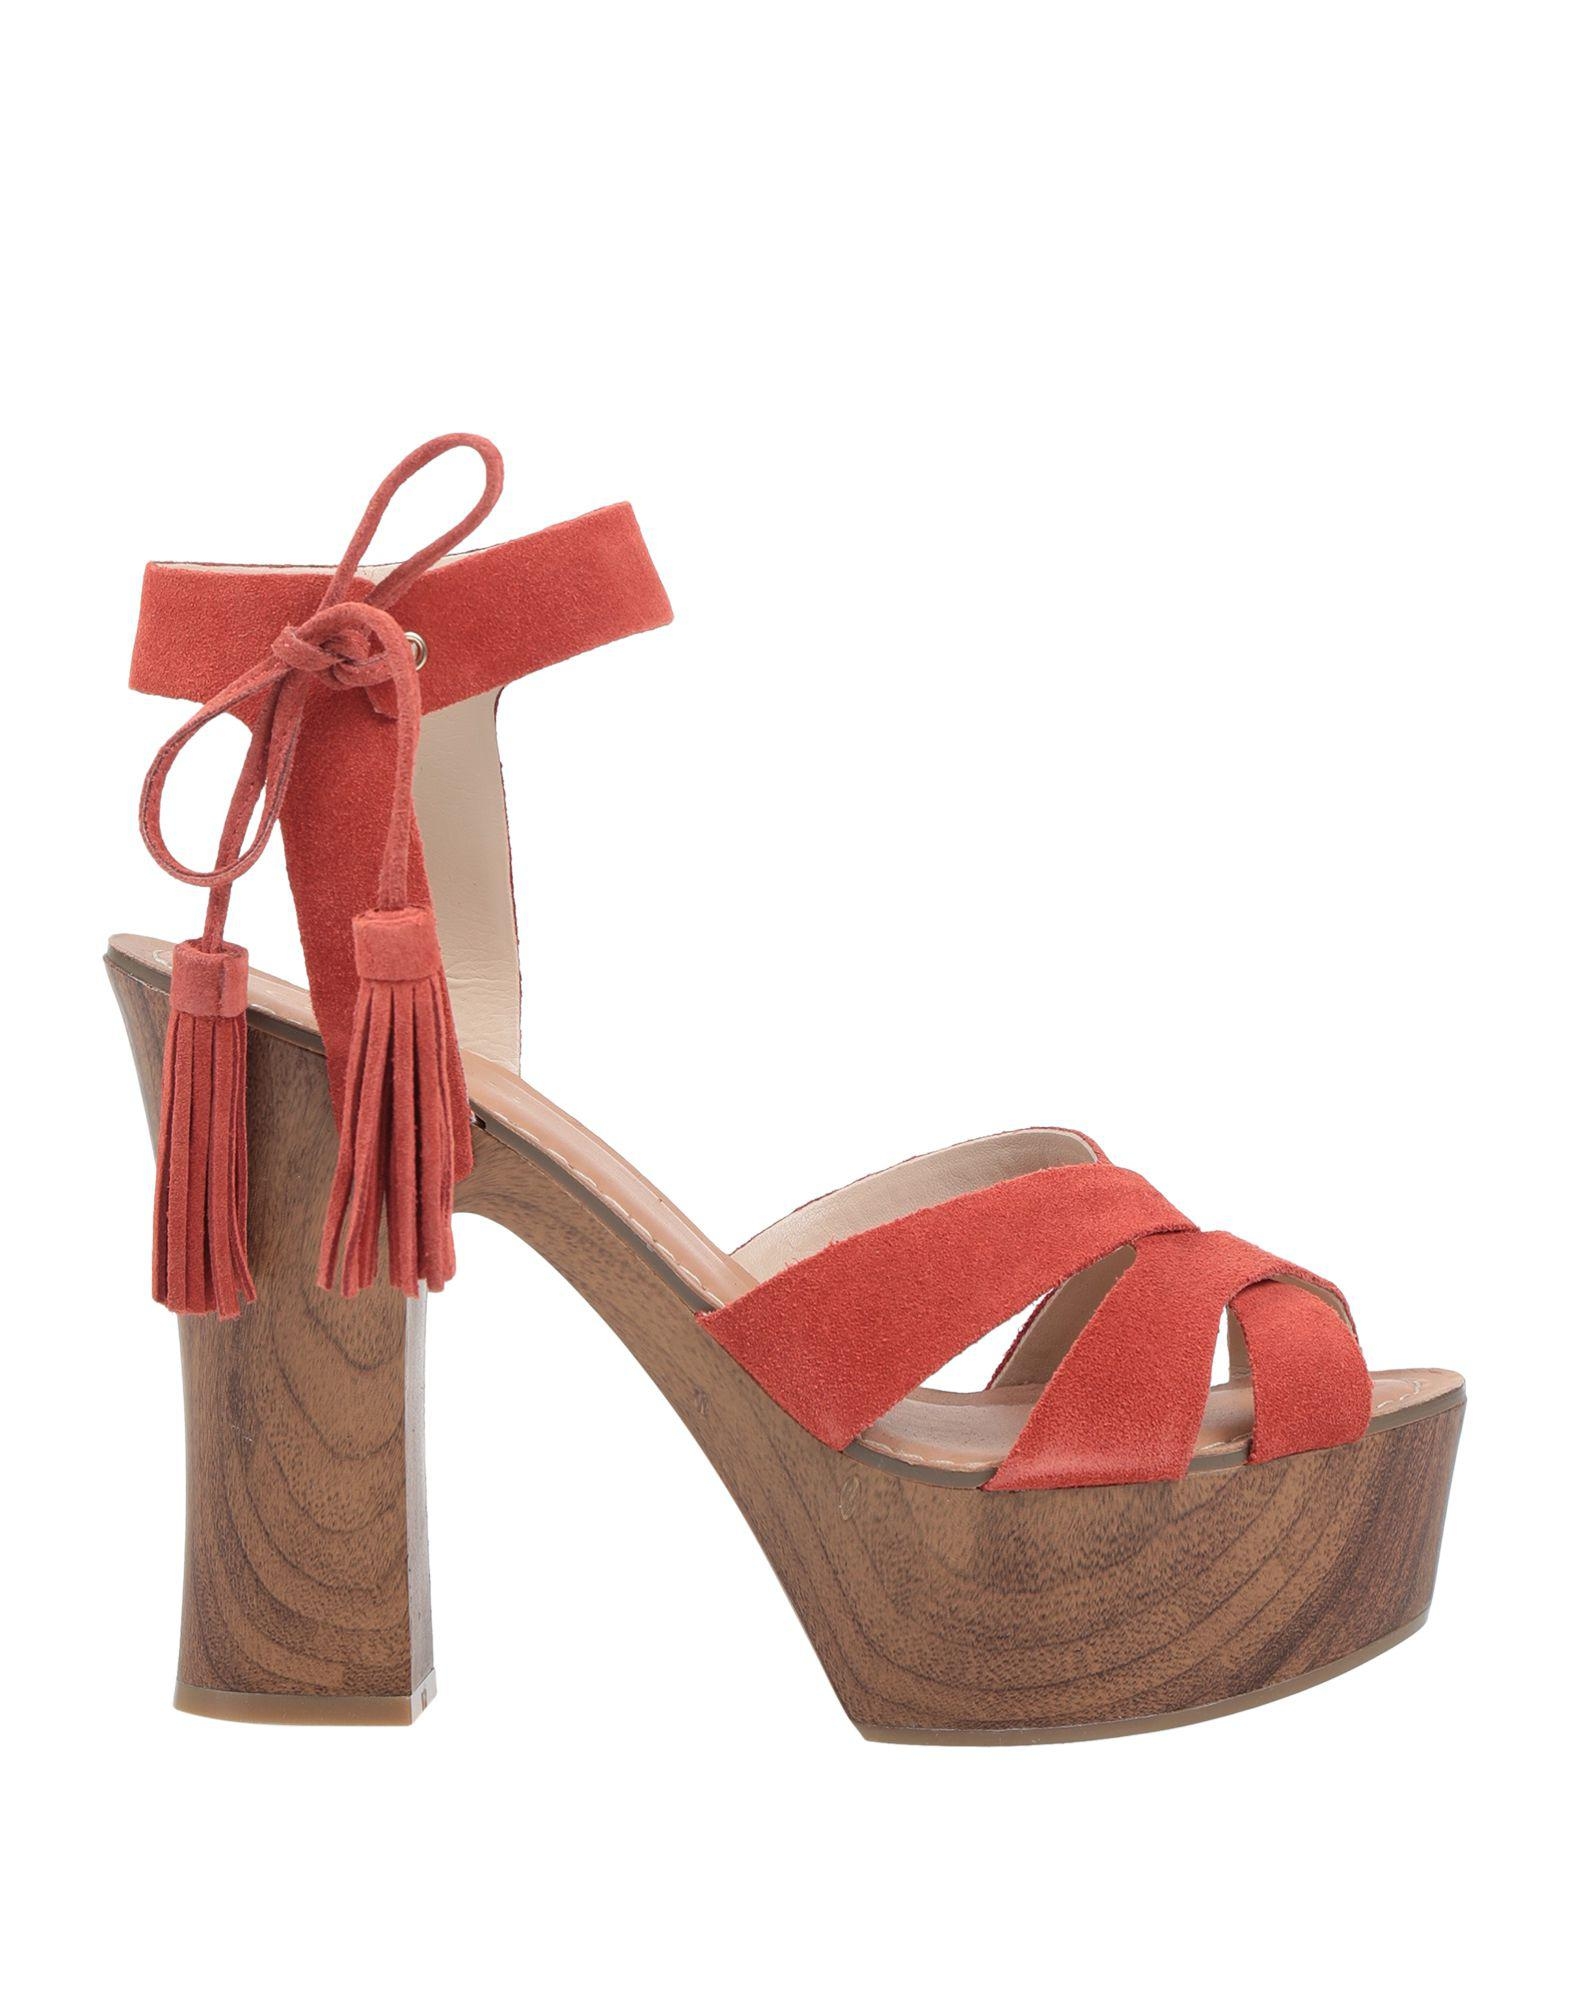 381993484c5b Lyst - Guess Sandals in Red